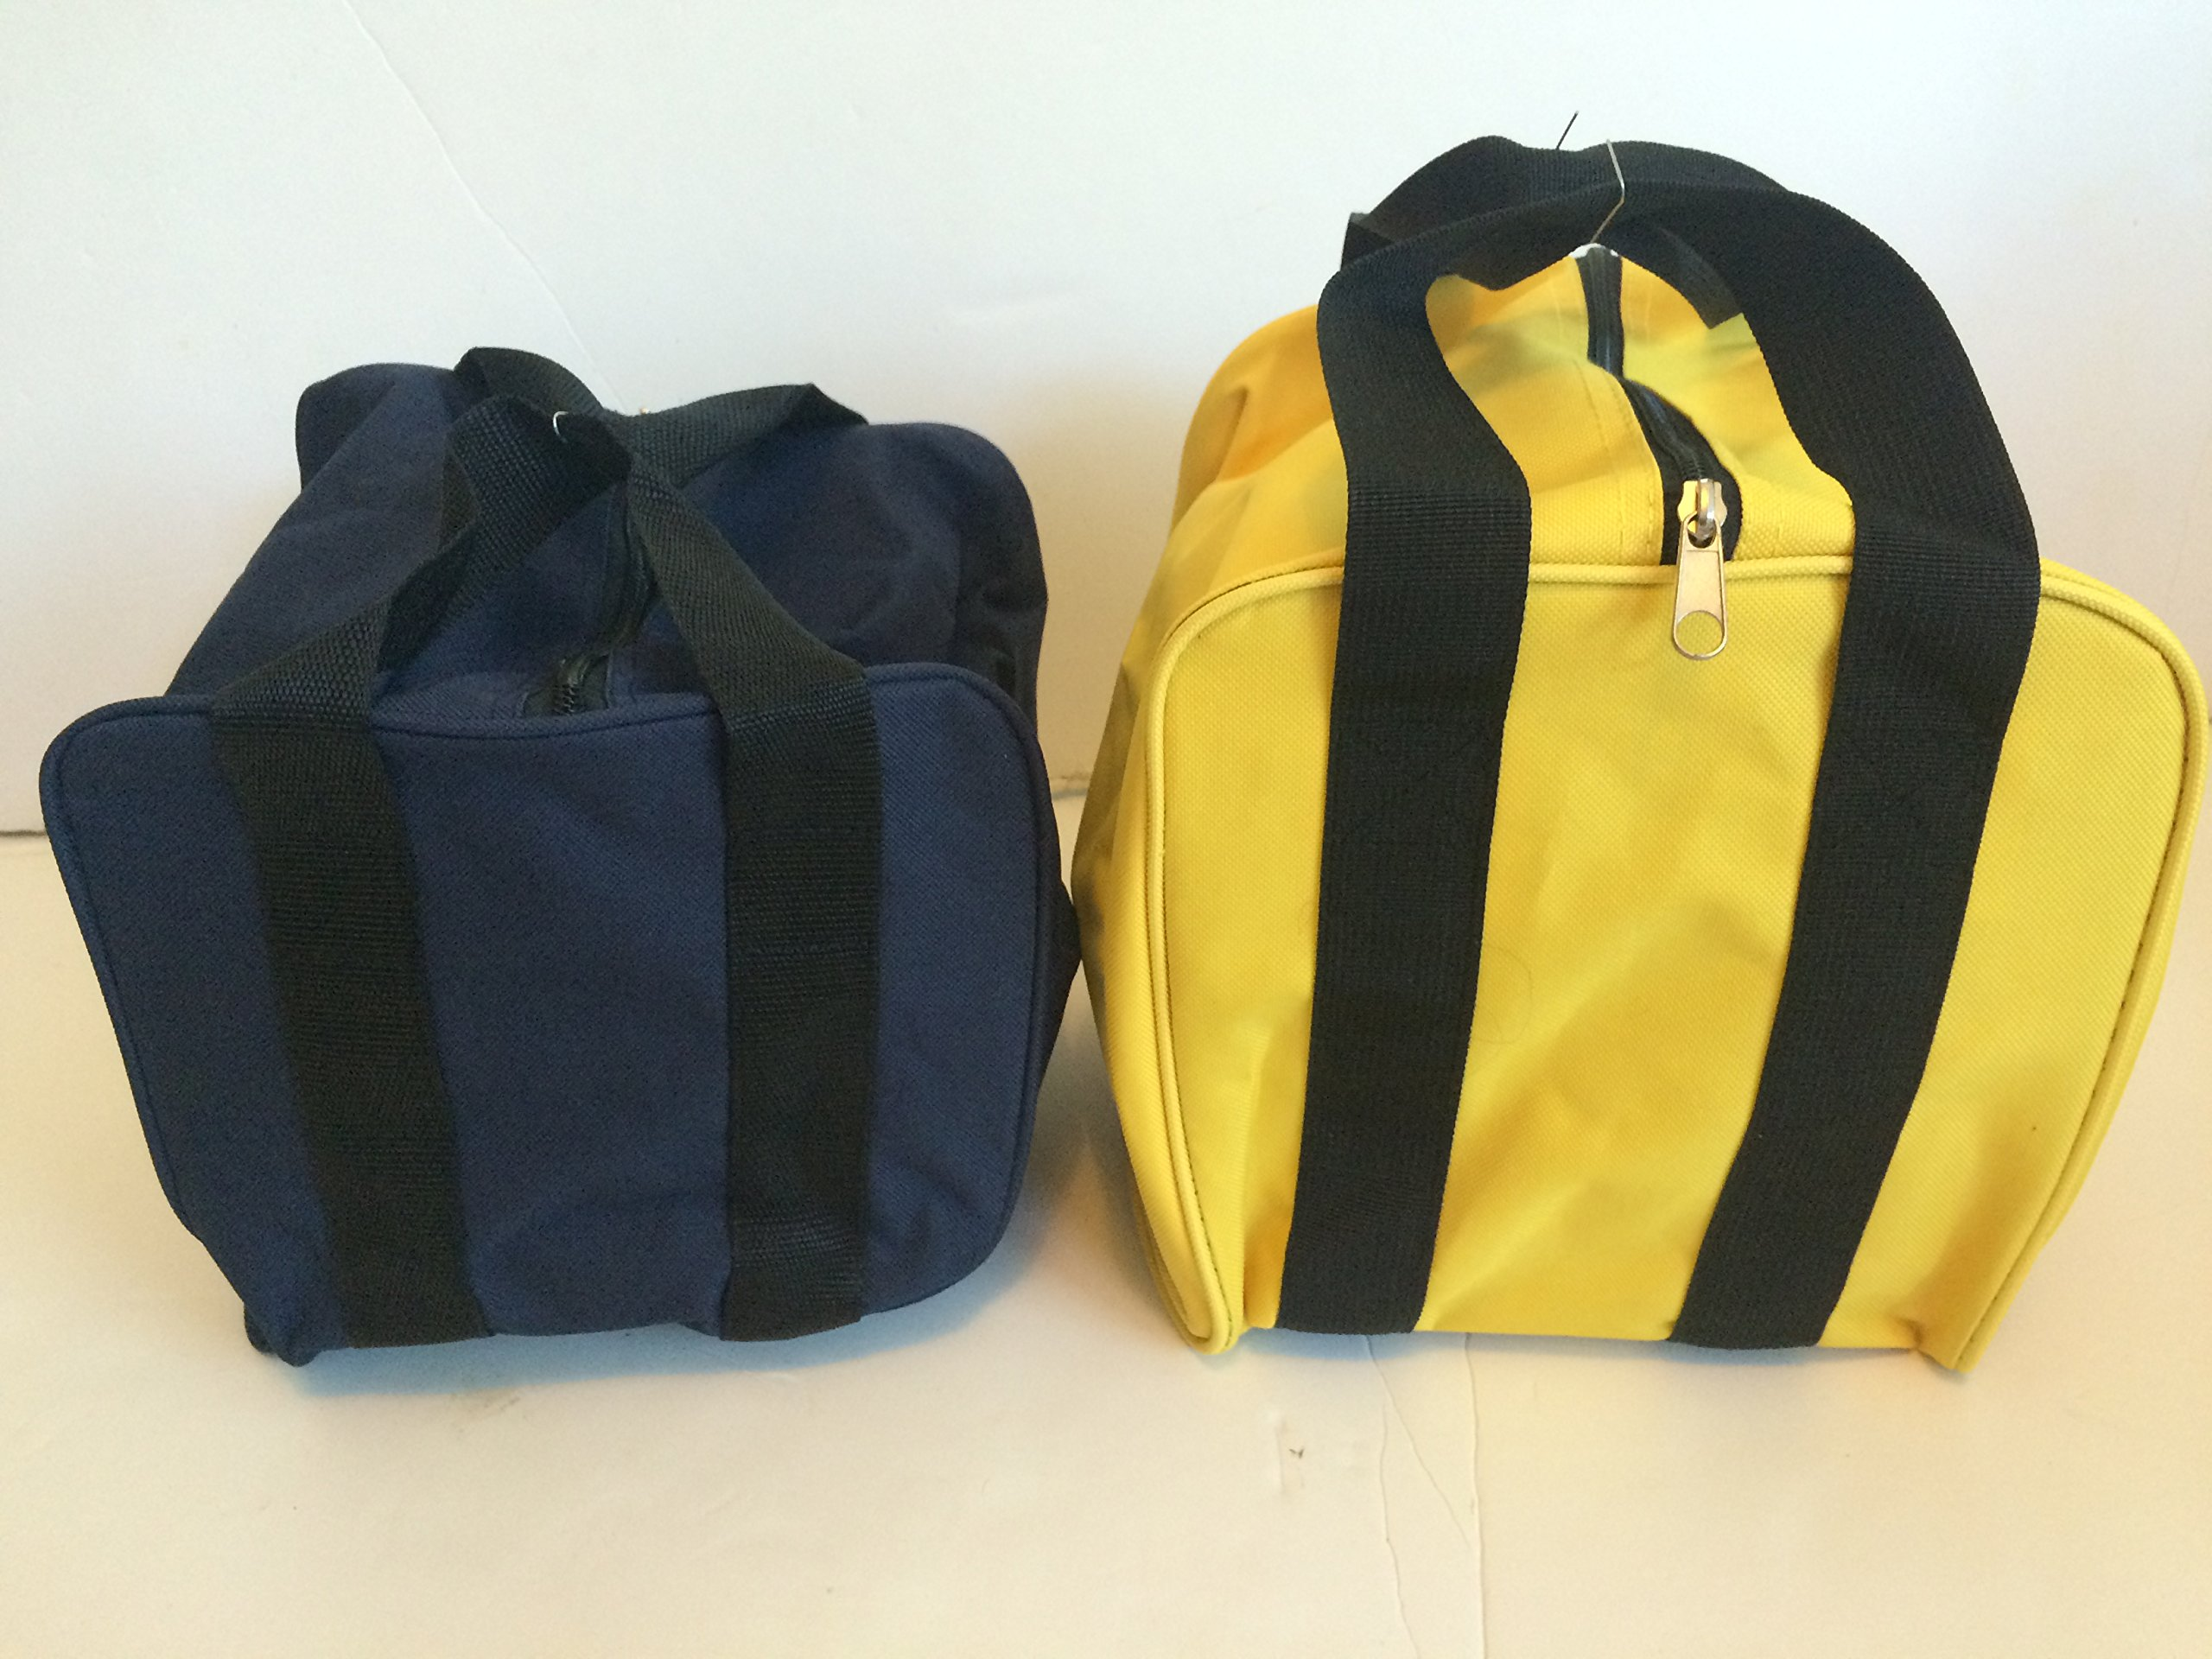 Unique Package - Pack of 2 Extra Heavy Duty Nylon Bocce Bags - Blue with Black Handles and Yellow with Black Handles by BuyBocceBalls